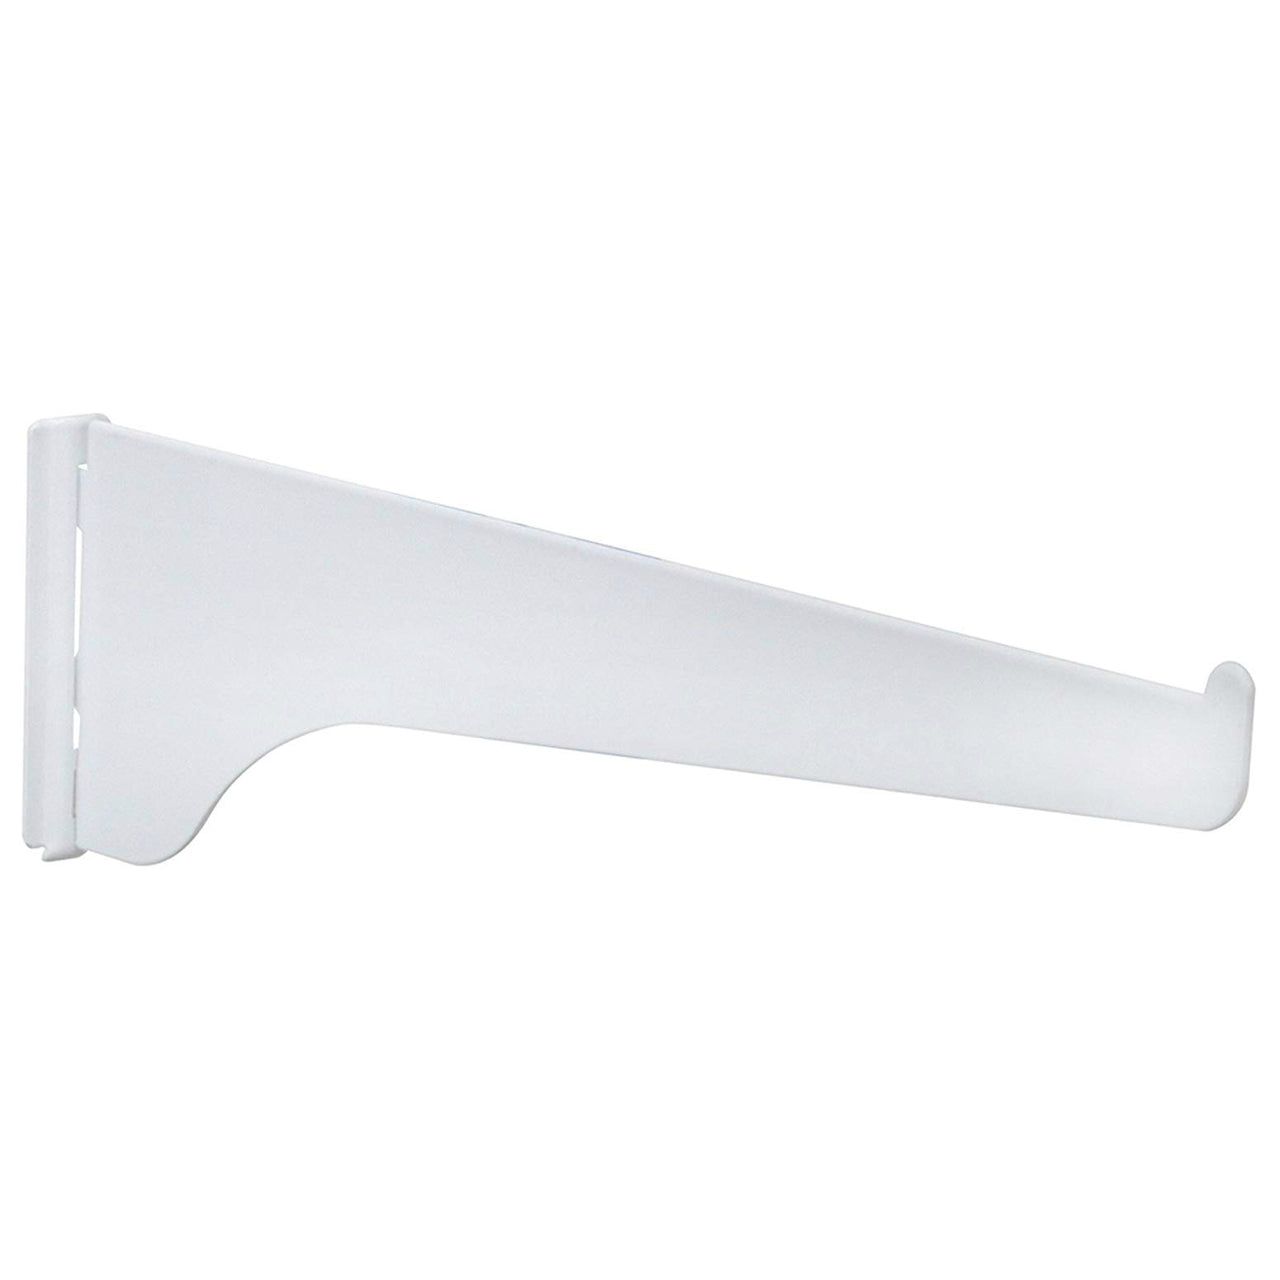 Knape & Vogt 180WH8 Shelf Standard Bracket,180-Series, White, 8""